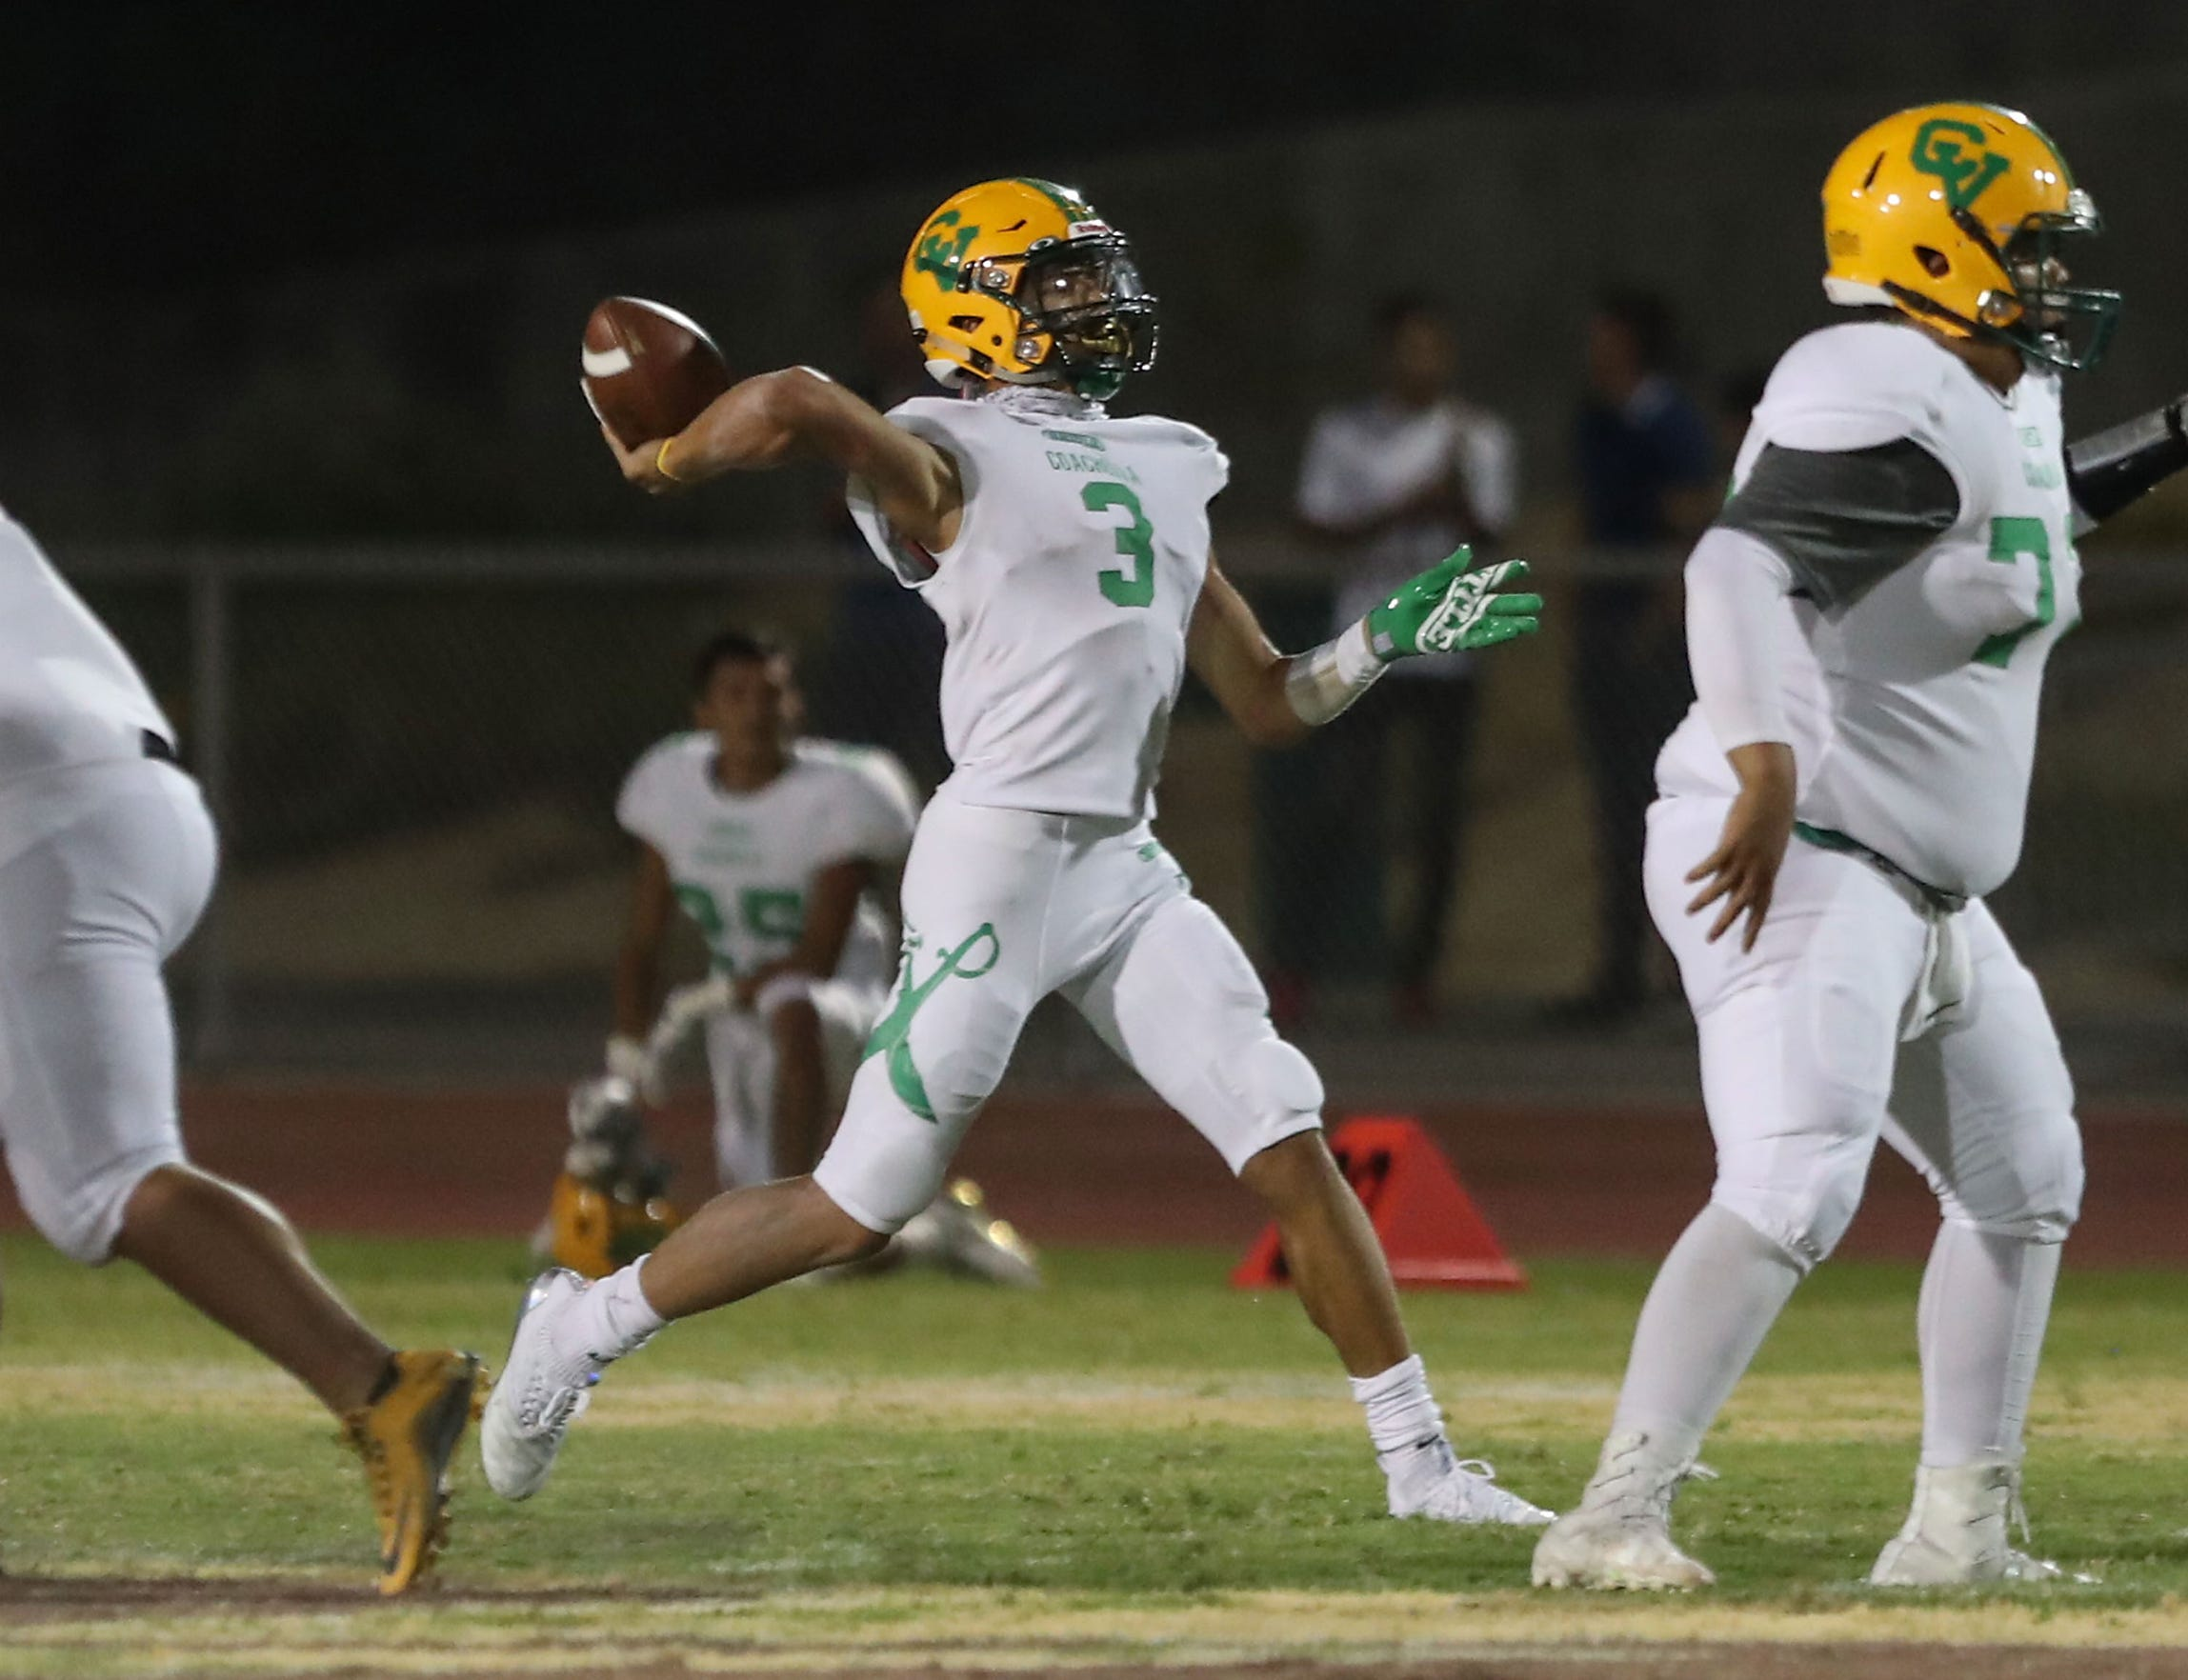 Coachella Valley quarterback Donny Fitzgerald throws a touchdown pass against Rancho Mirage, August 24, 2018